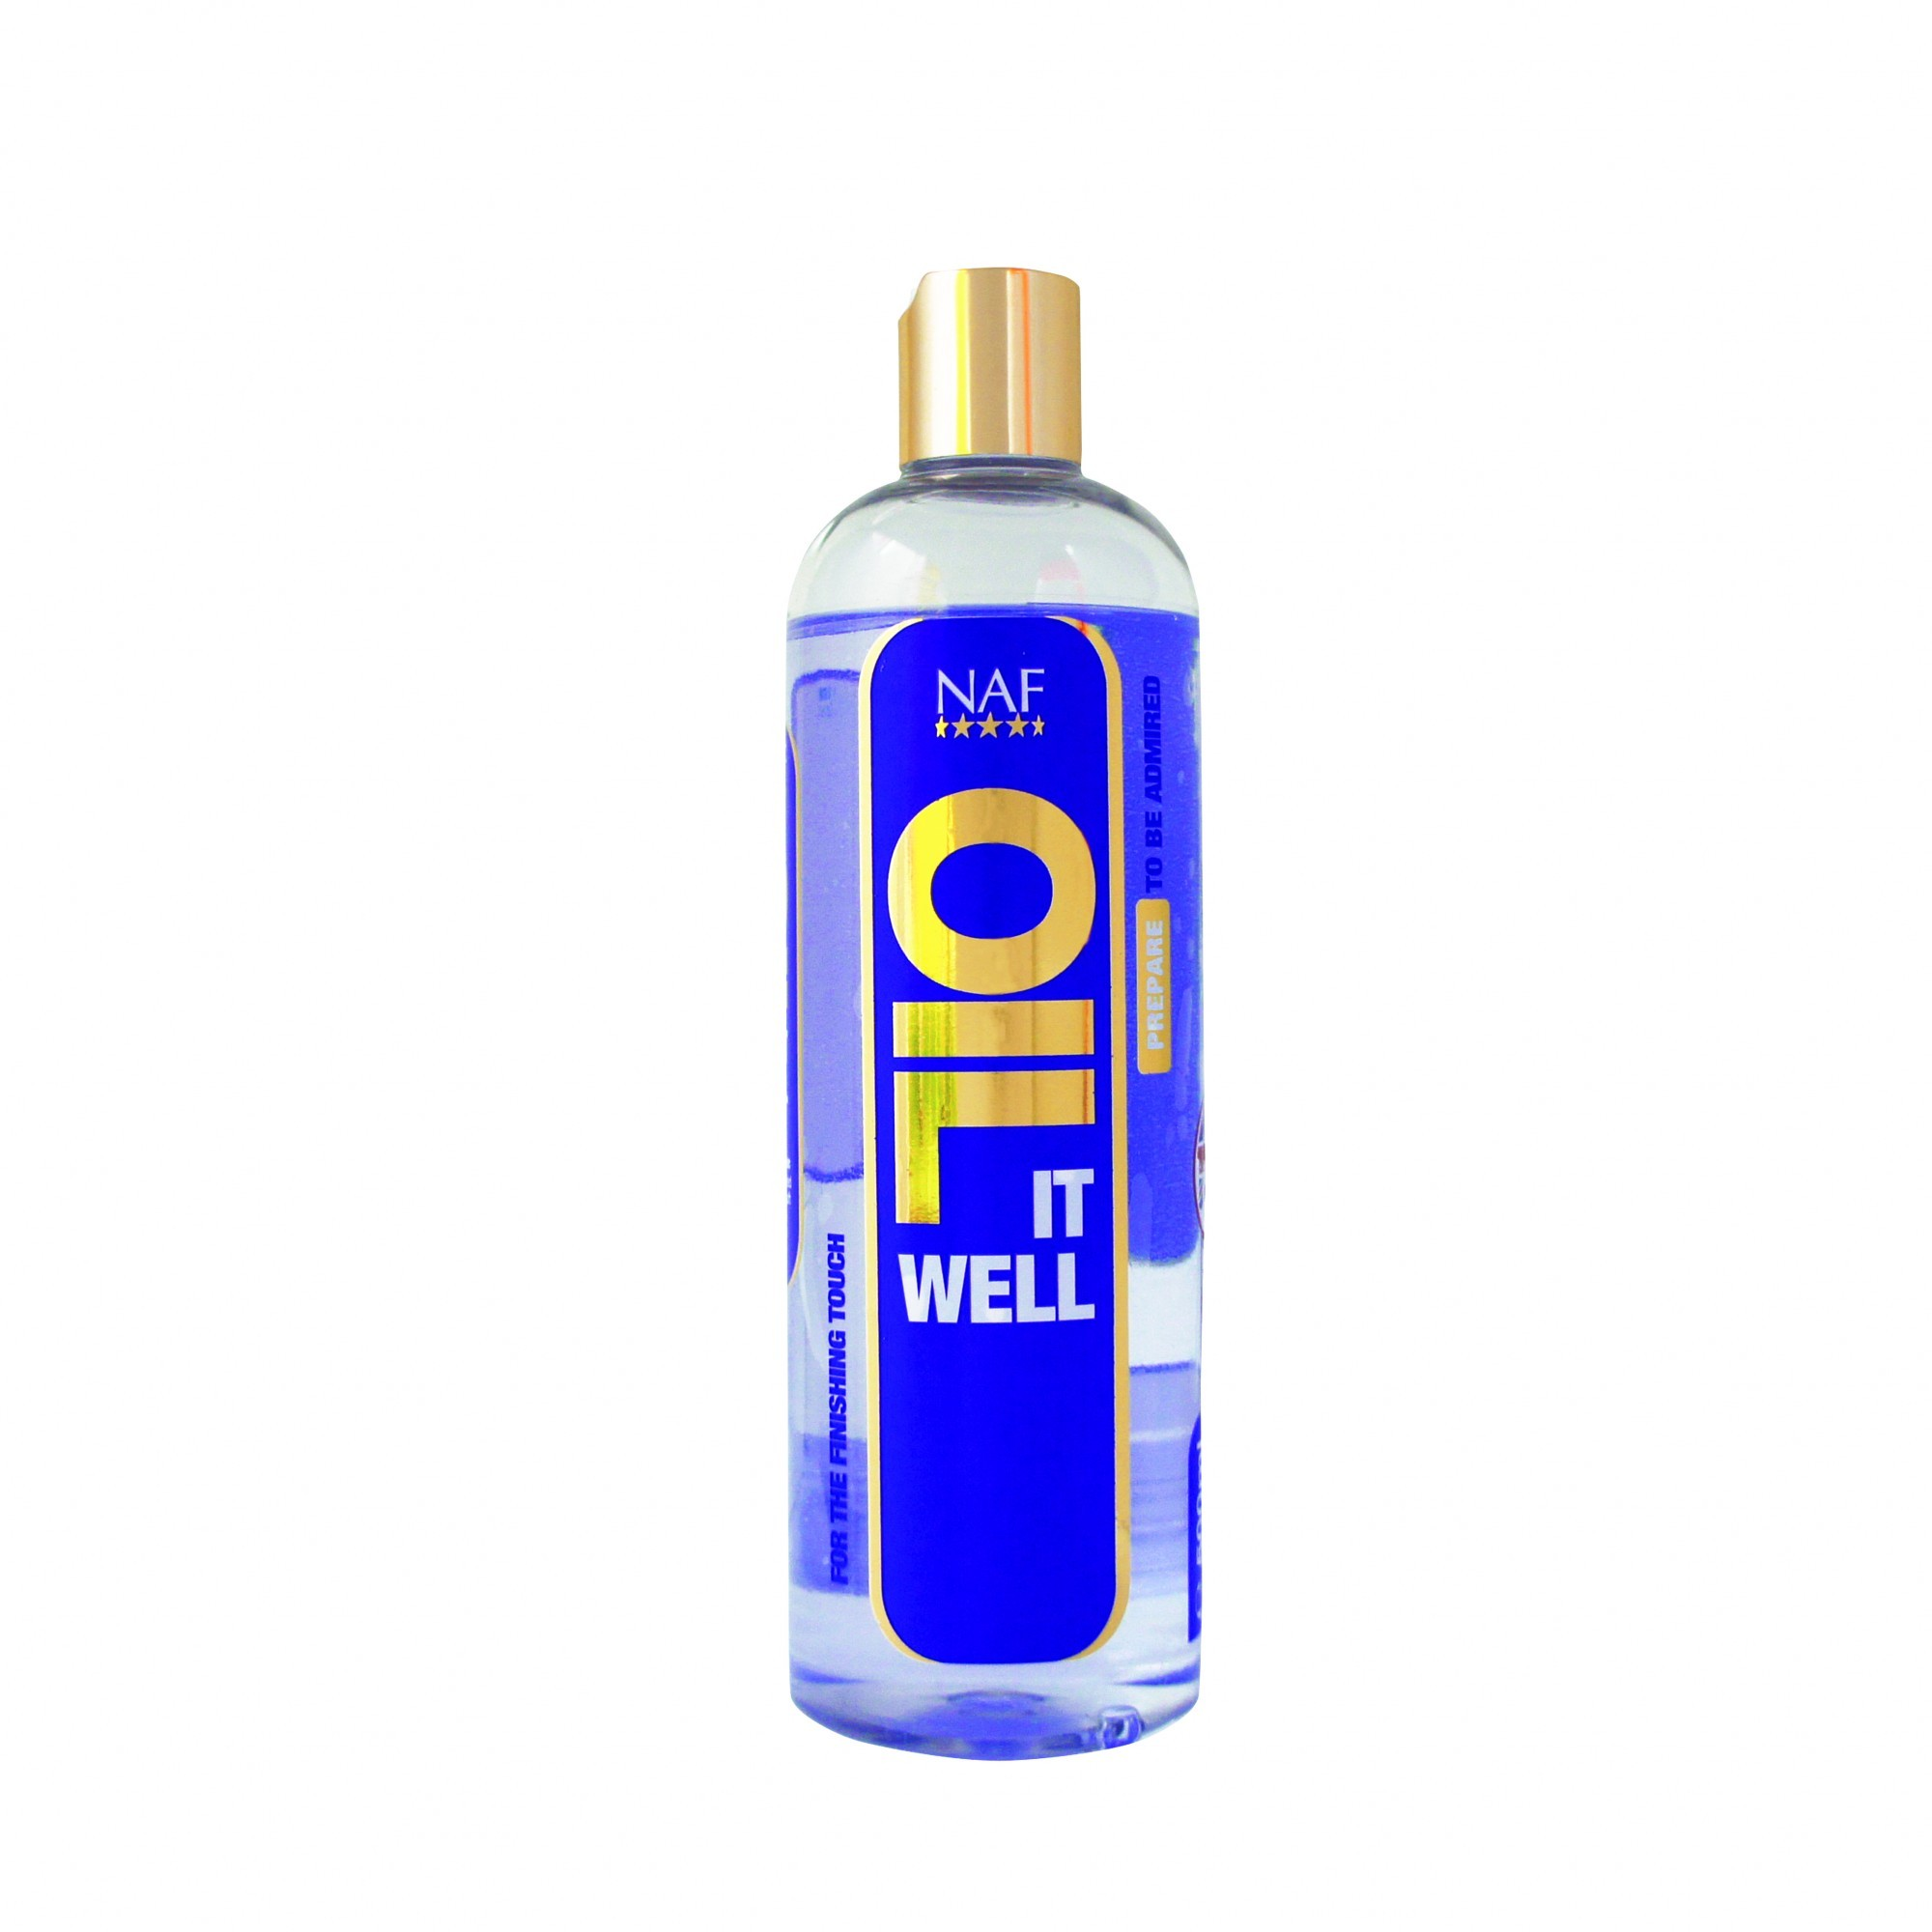 NAF Oil It Well  - Thomas Irving's equestrian and accessories store  NAF Oil It Well